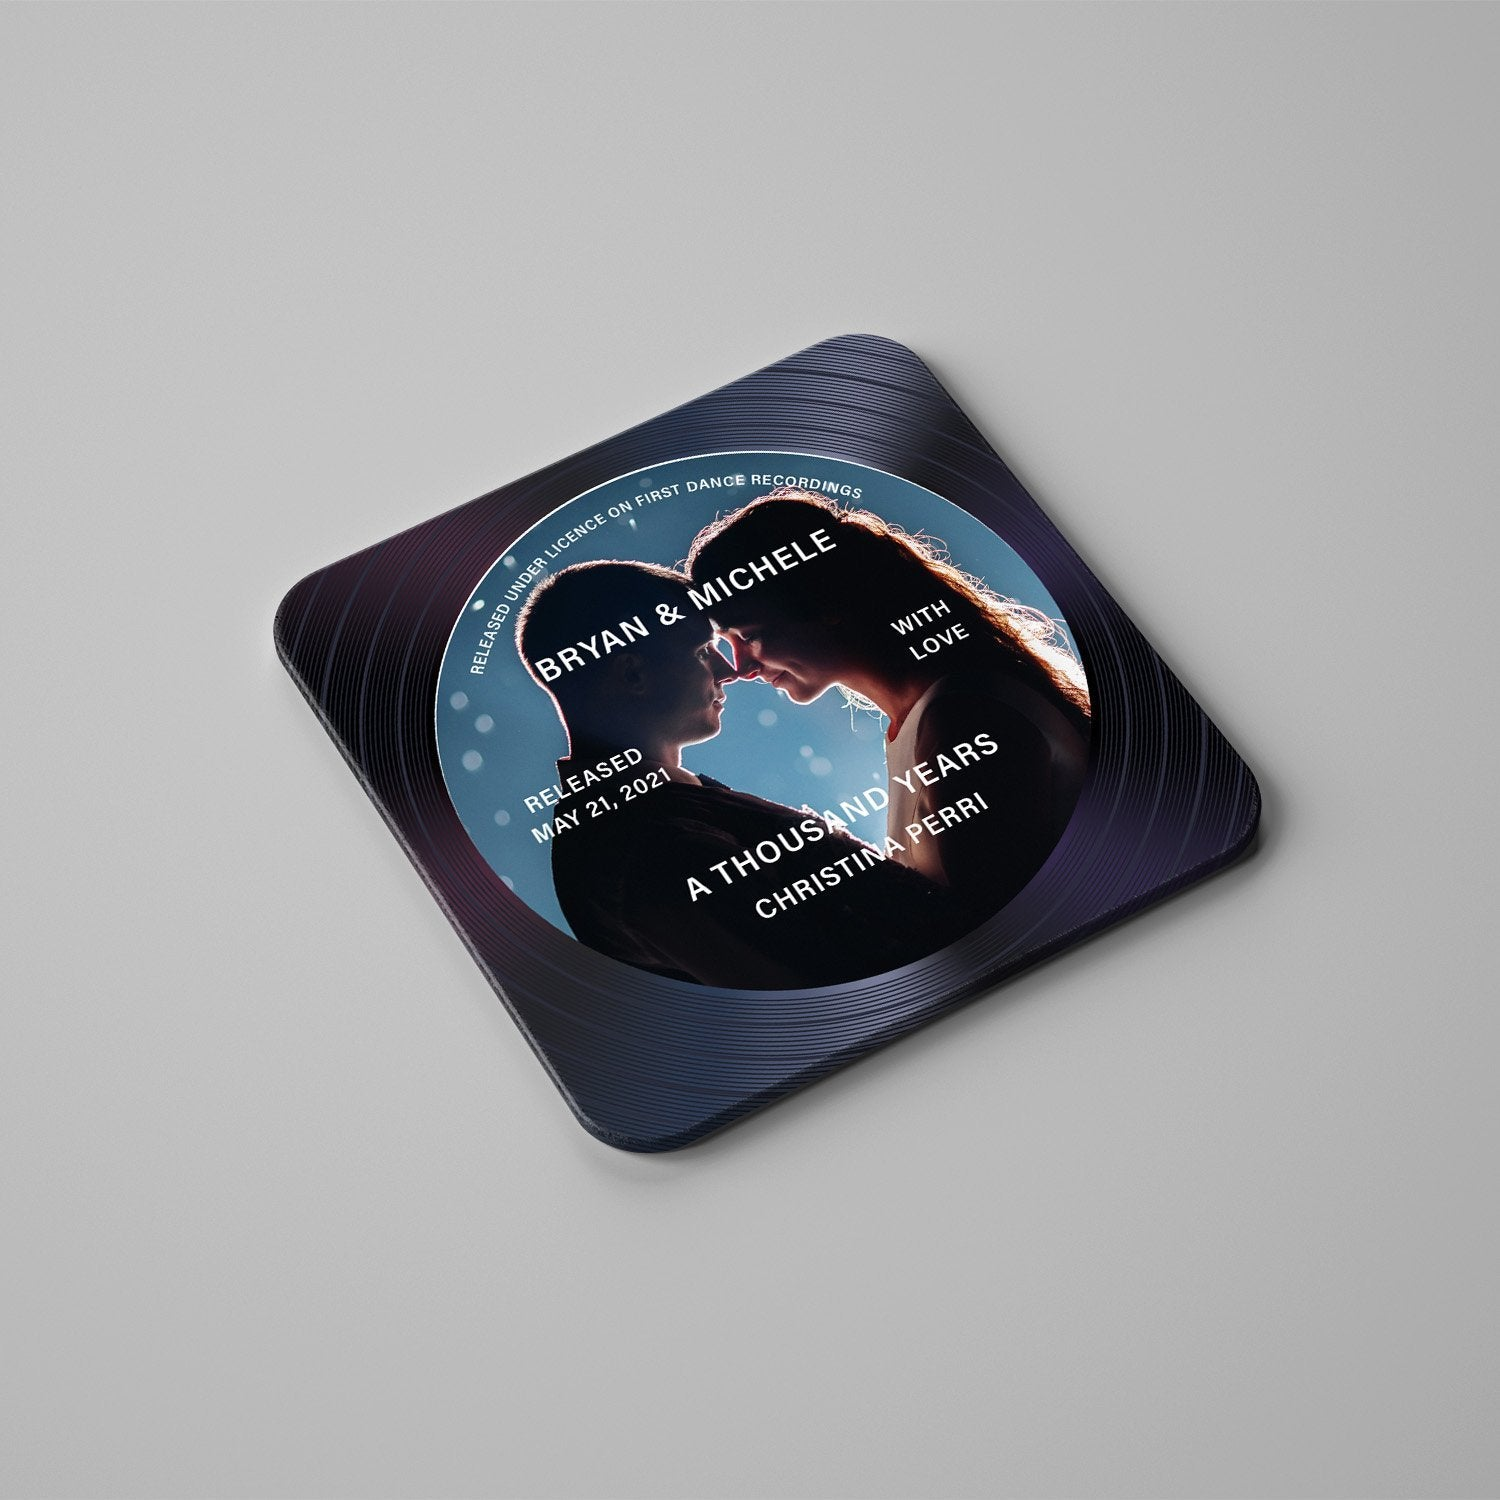 Custom Set Of 4 Stone Coasters Personalized With Photo, Name, Song and Text